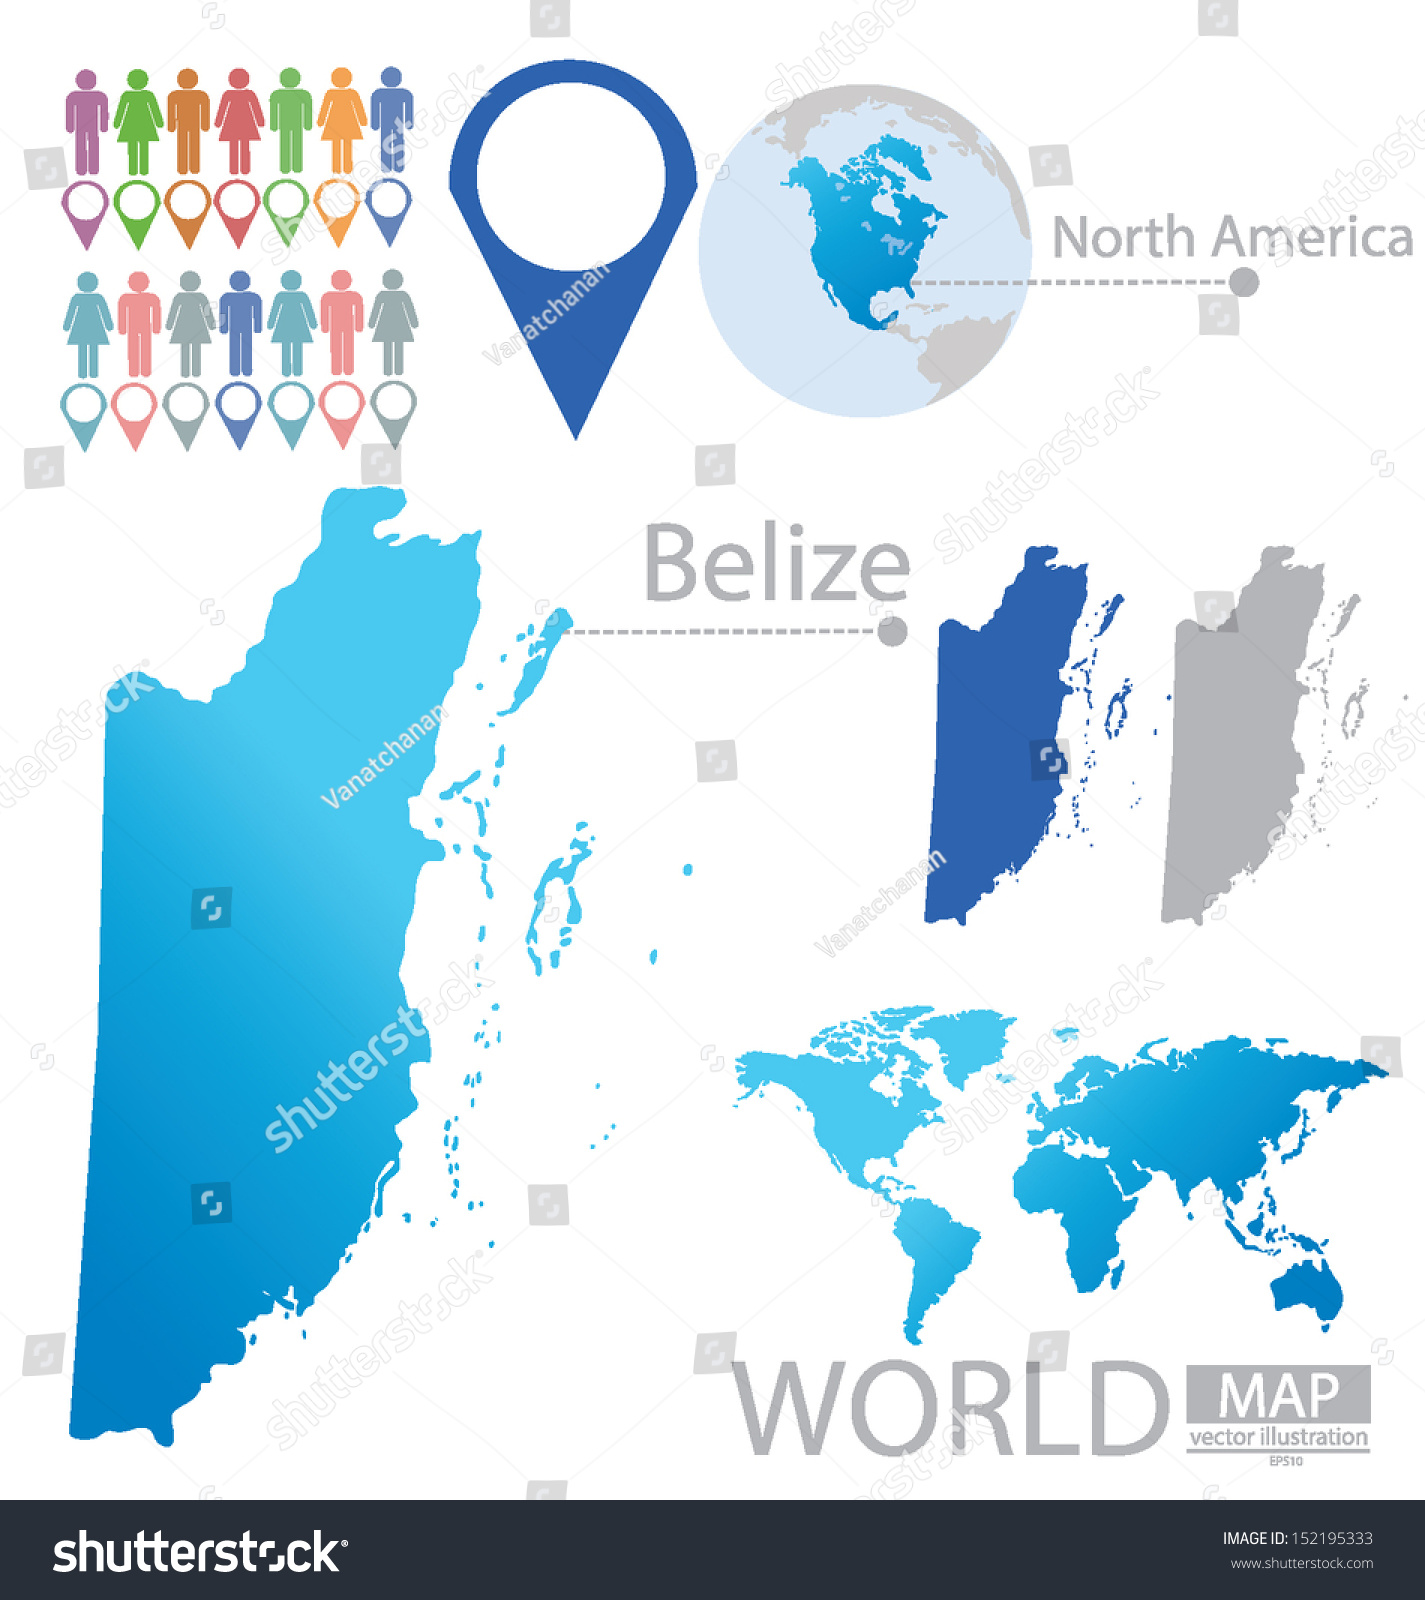 Belize Flag North America World Map Stock Vector HD Royalty Free